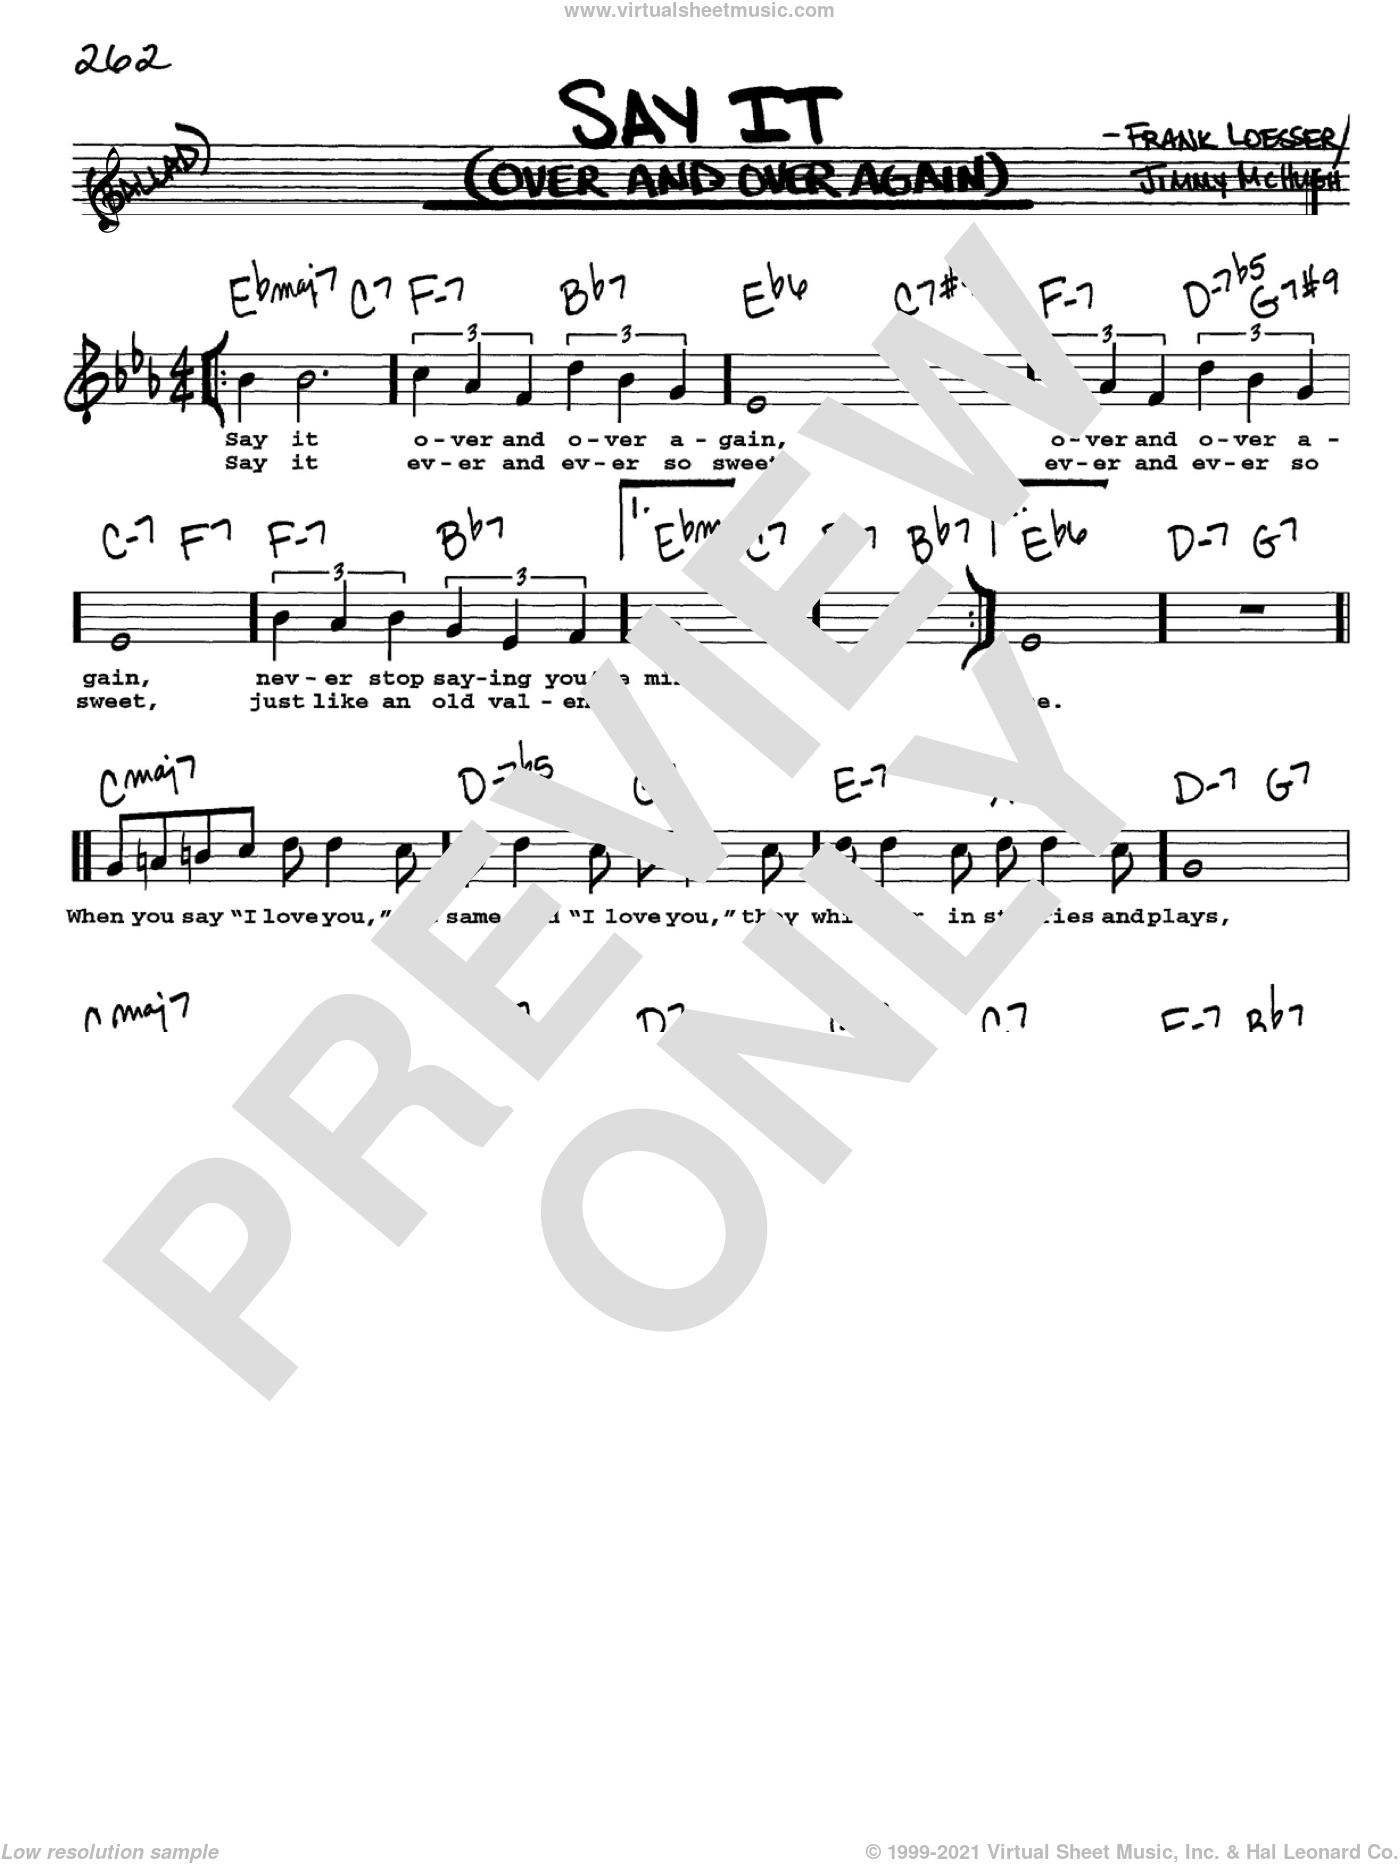 Say It (Over And Over Again) sheet music for voice and other instruments  by Frank Loesser and Jimmy McHugh, intermediate. Score Image Preview.